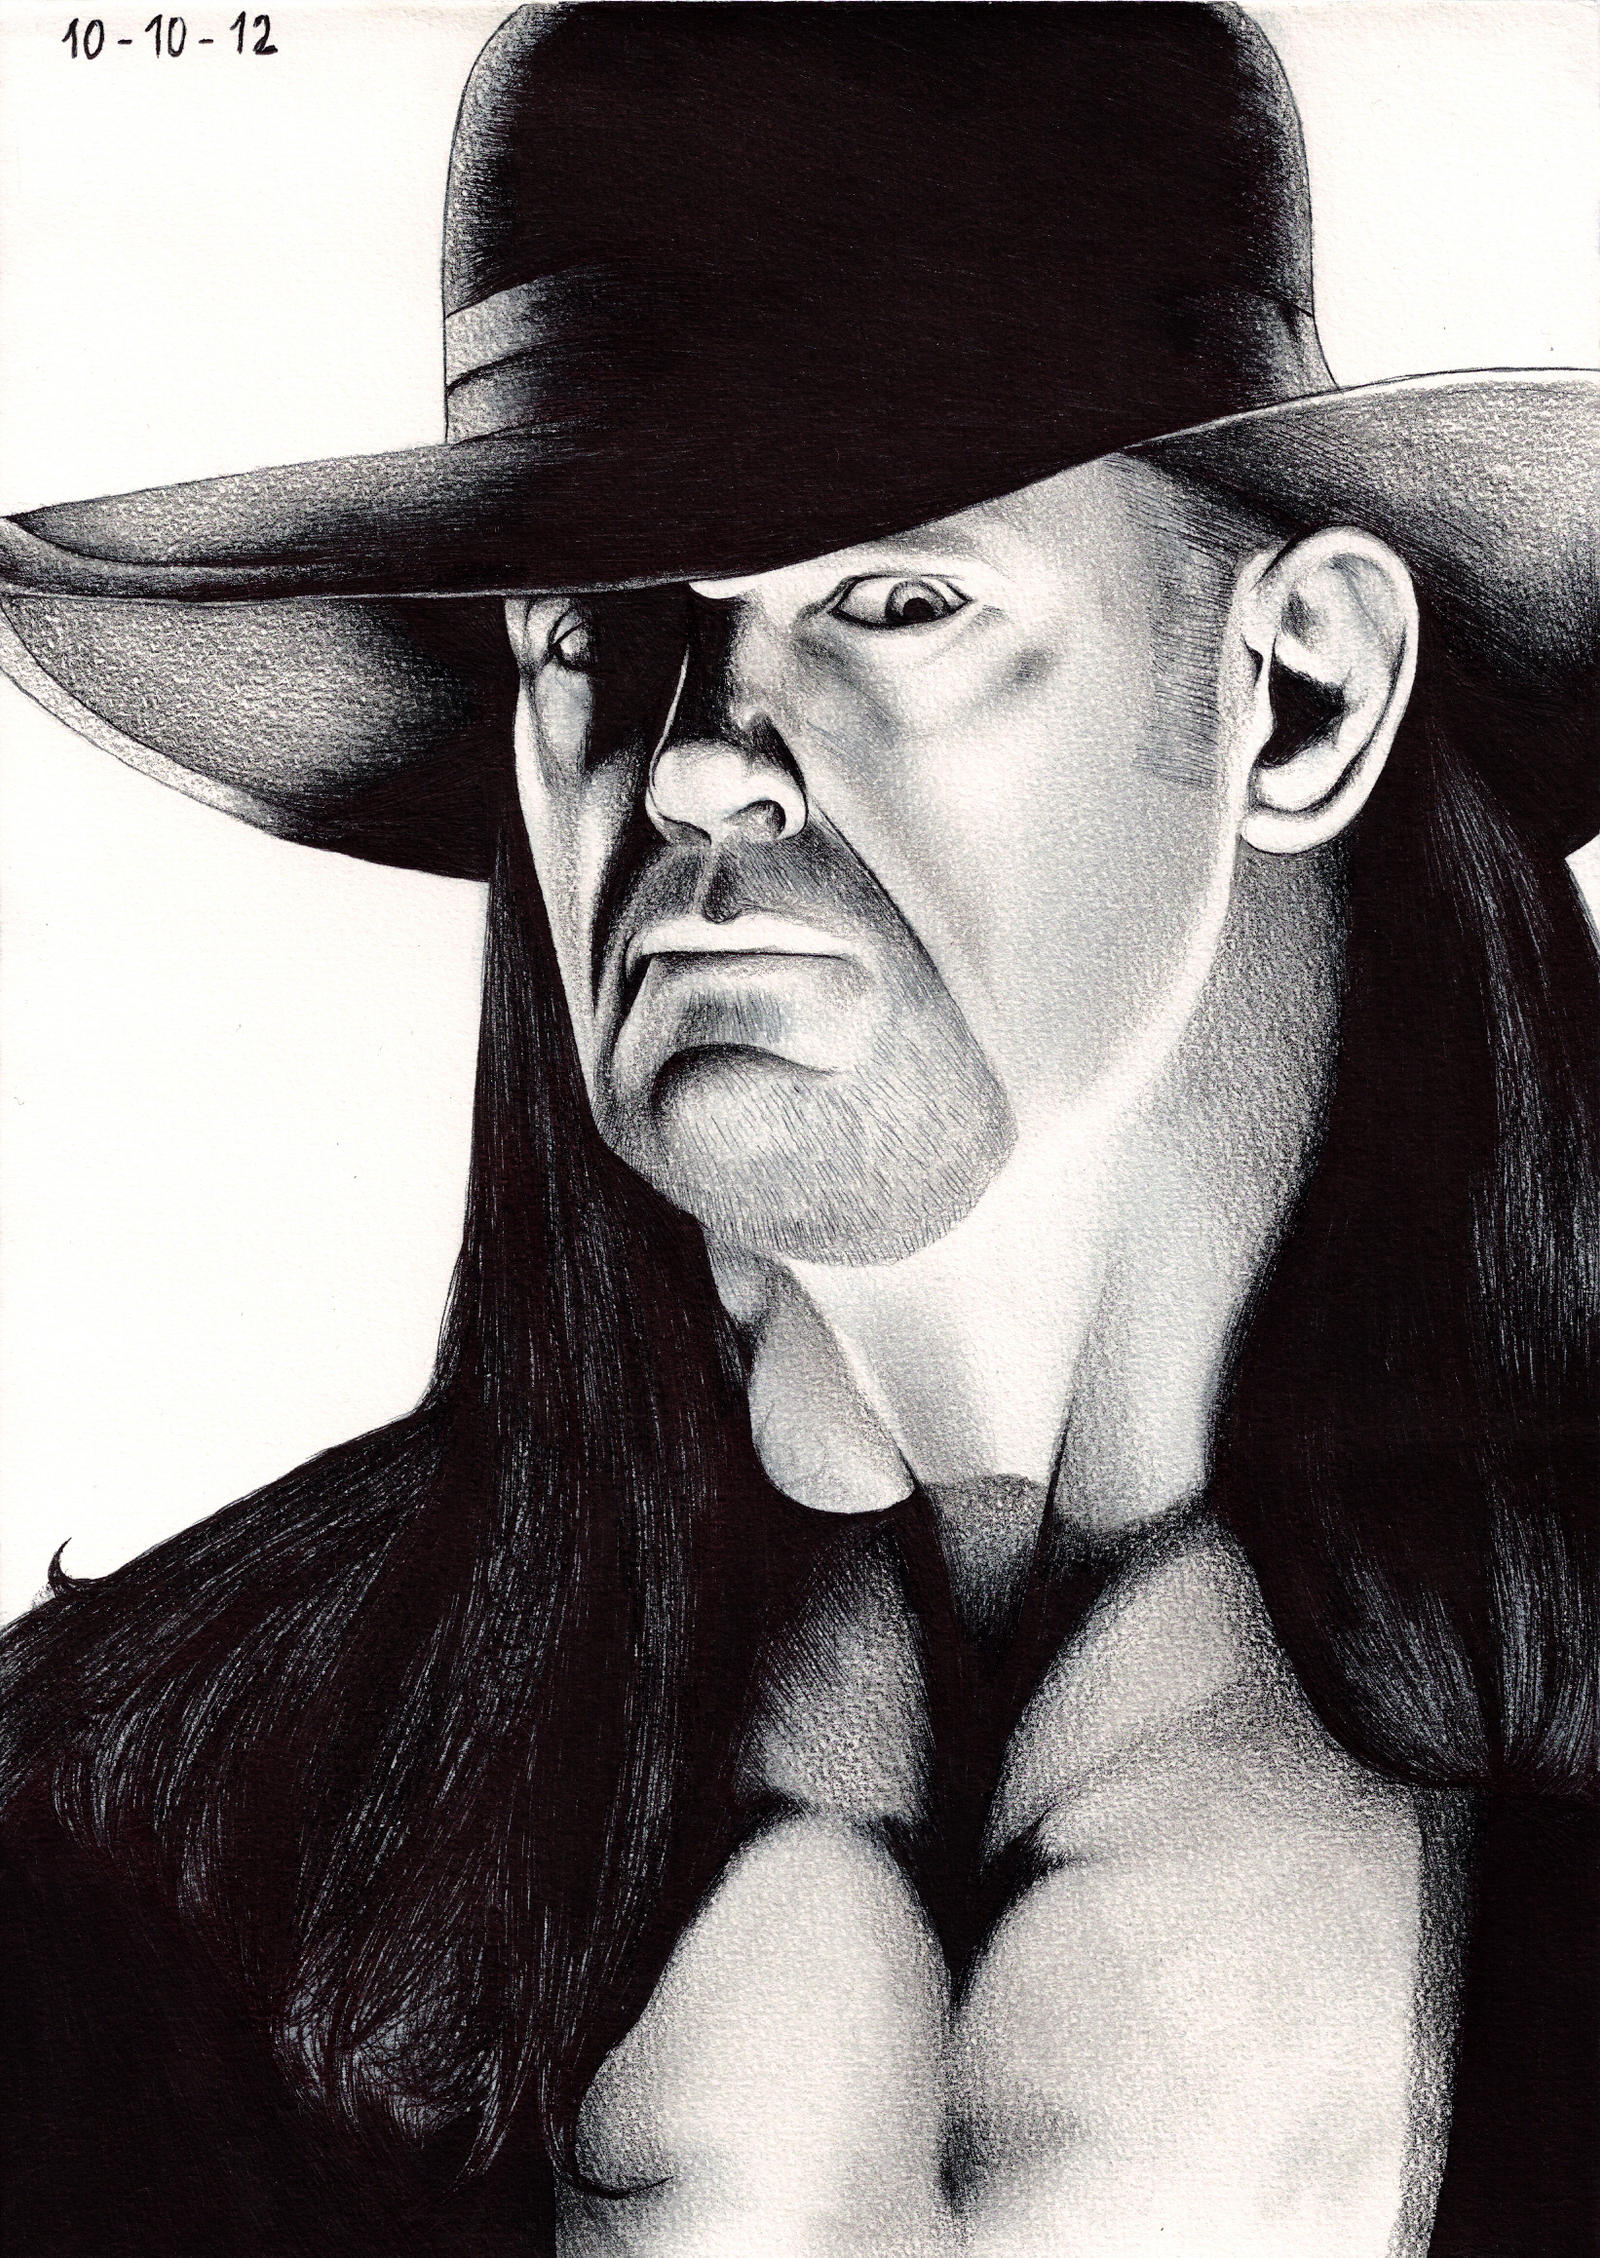 The Undertaker by tyller16